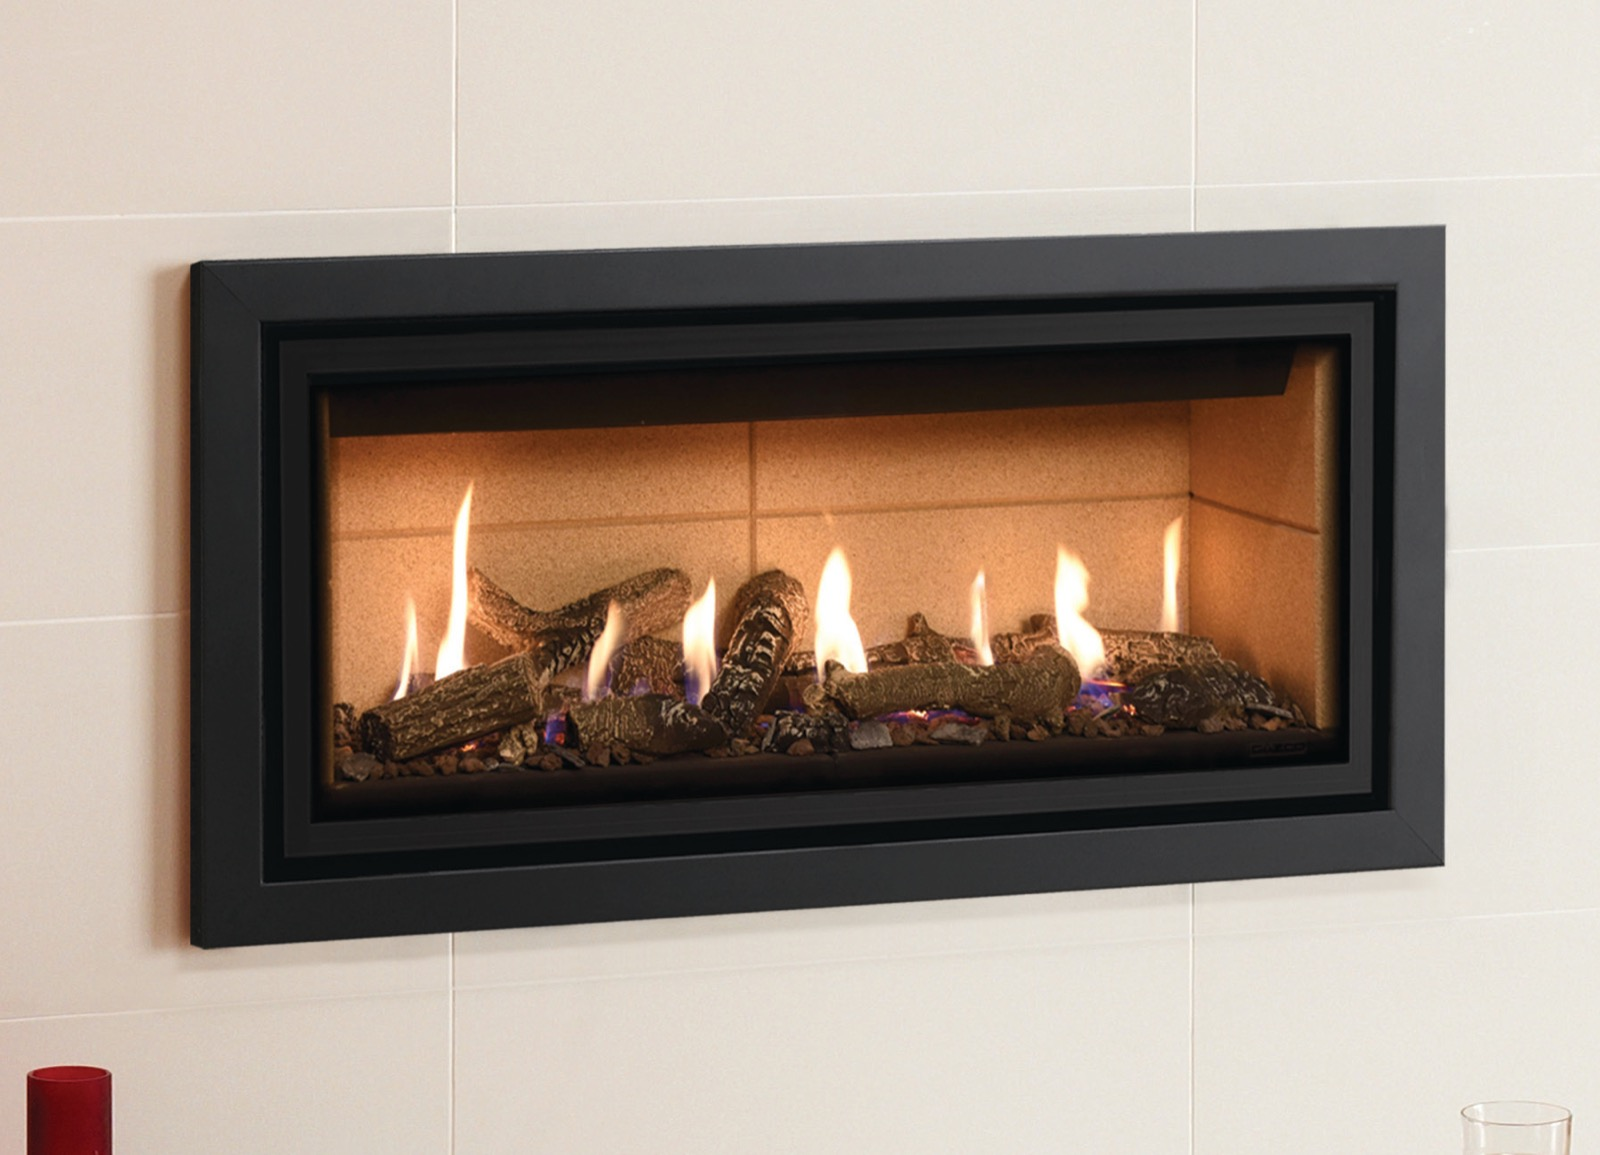 Gazco Profil Front/Frame Only - in Anthracite for Studio 1 Glass Fronted,  Conventional Flue Gas Fire